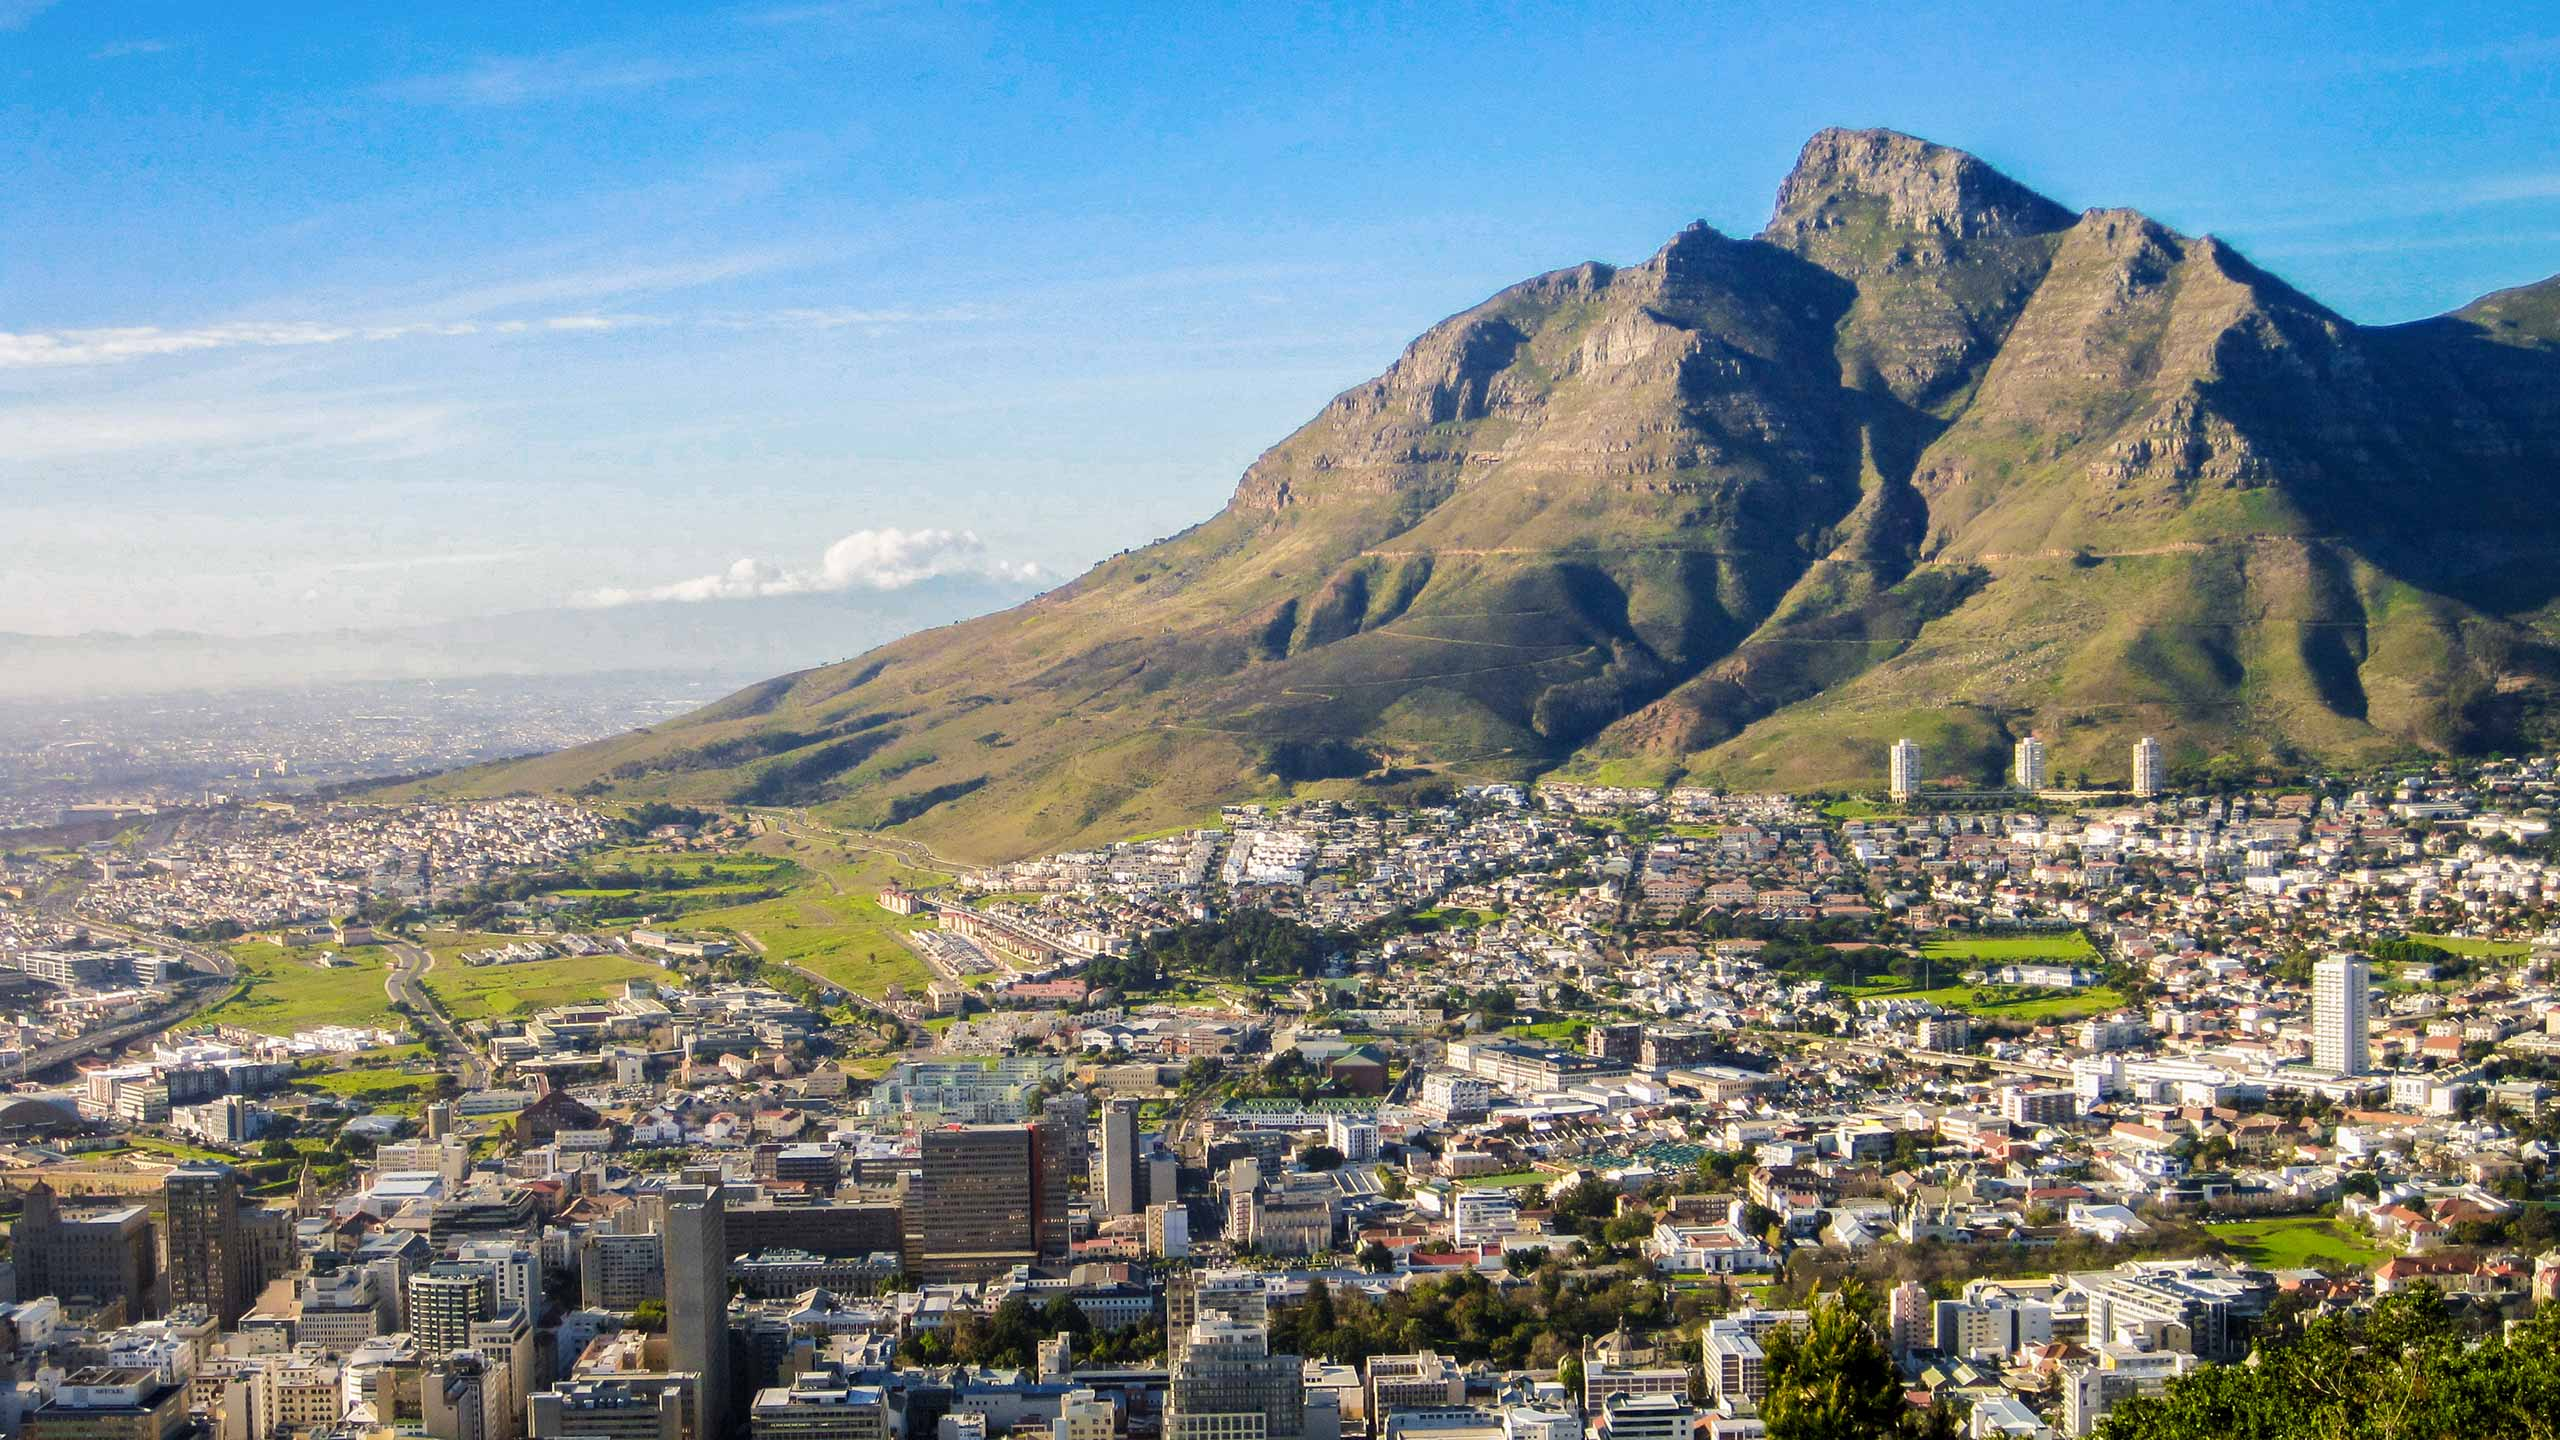 Cape Town, South Africa overview